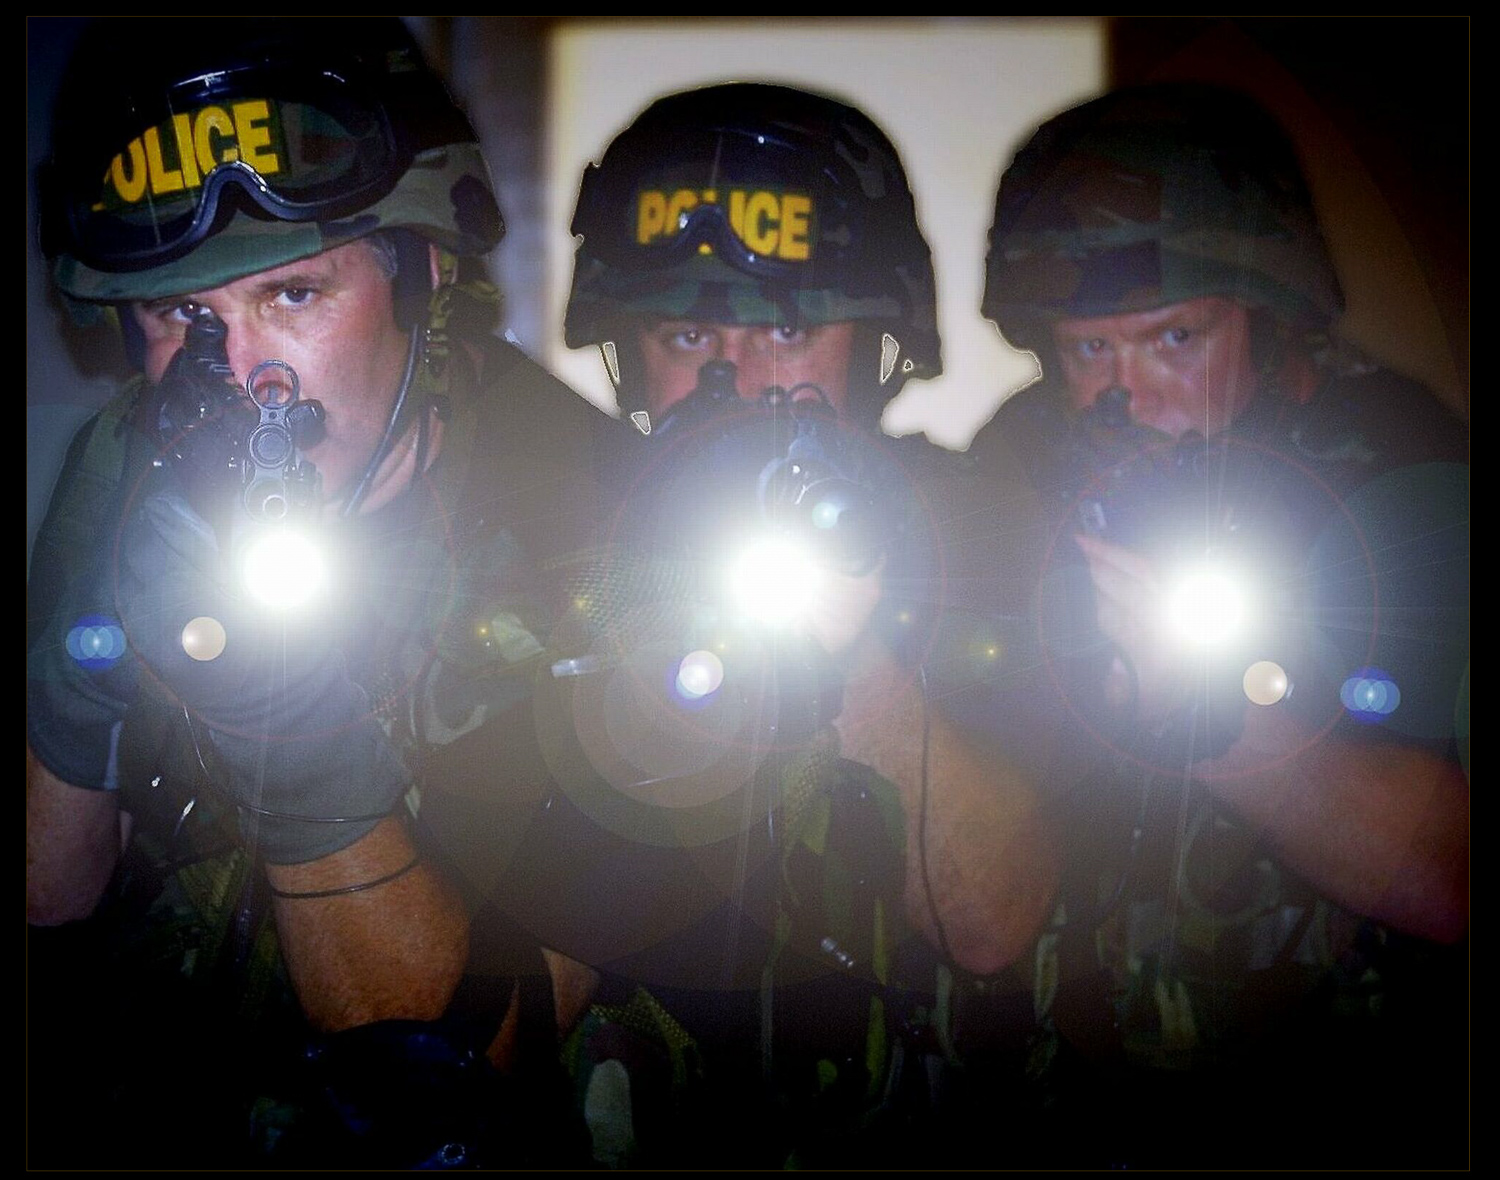 three police officers with lights and guns